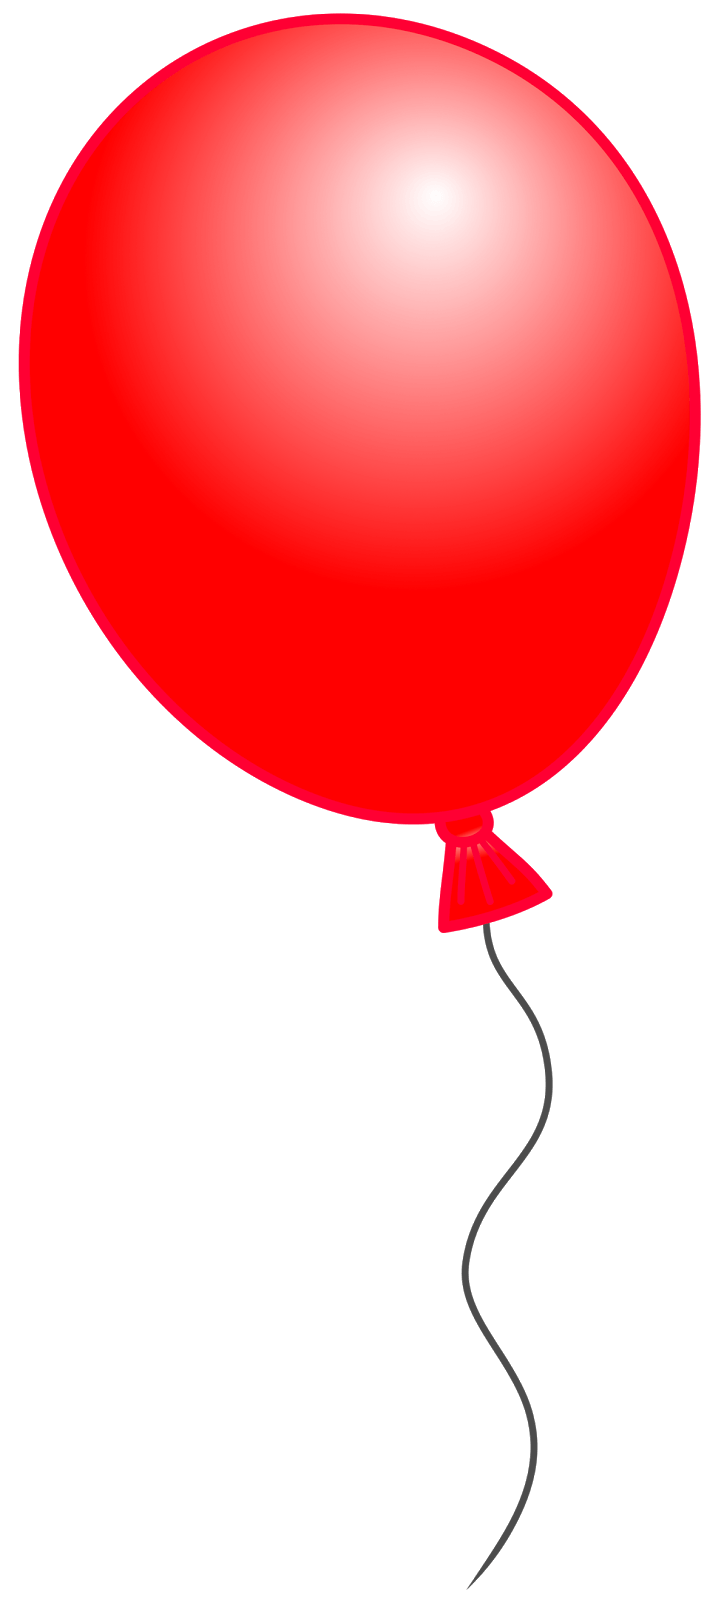 Red Balloon Cliparts.